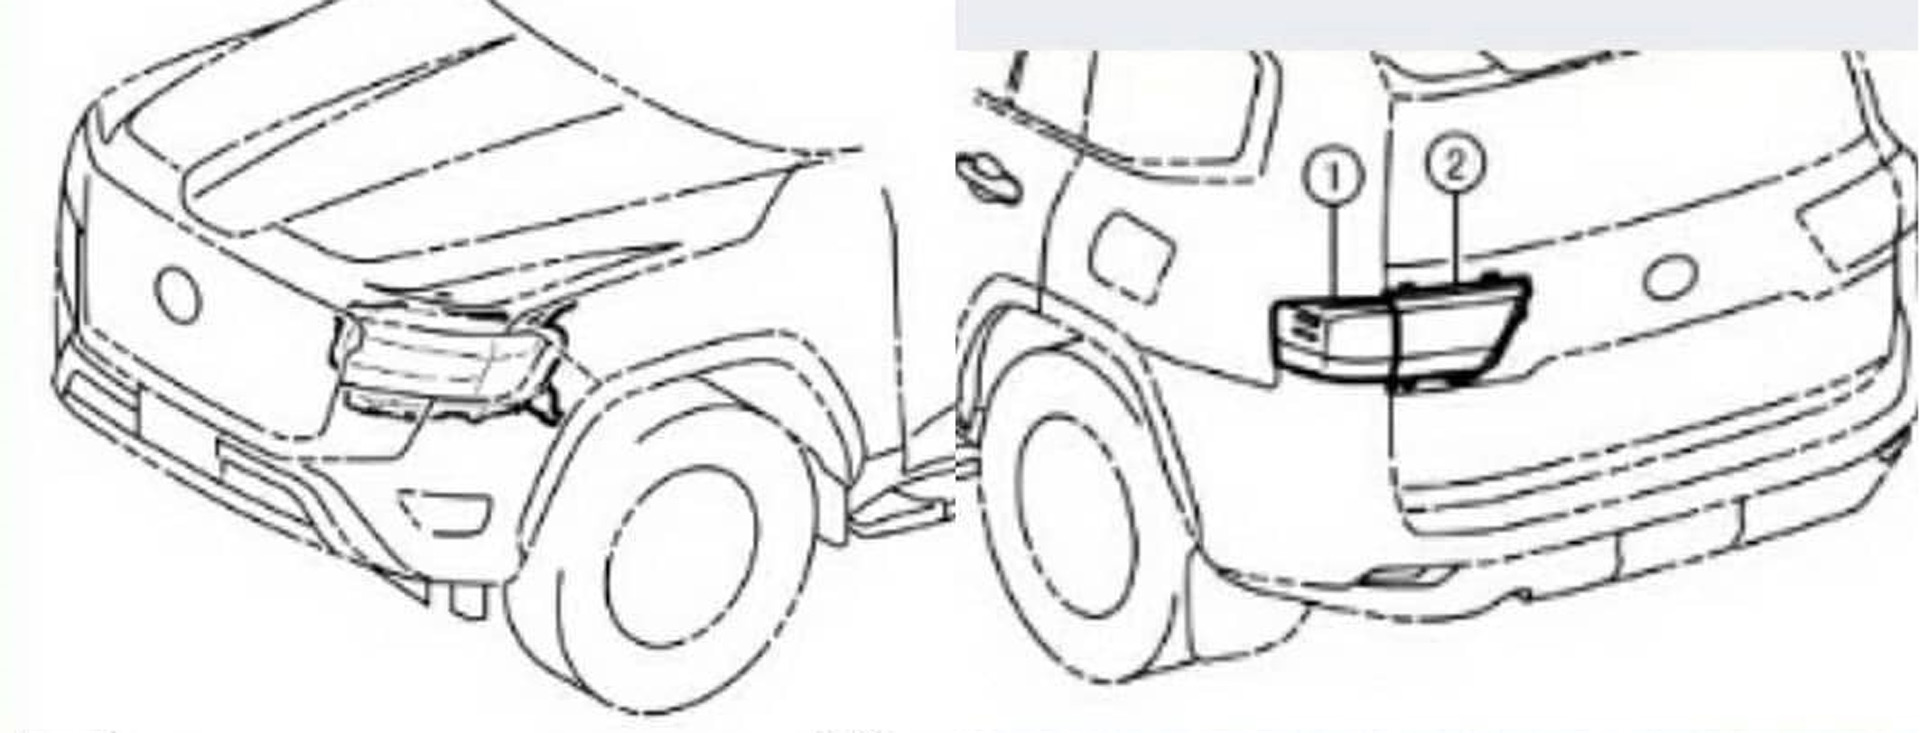 2022 Toyota Land Cruiser (300 series) alleged tech drawings may reveal design